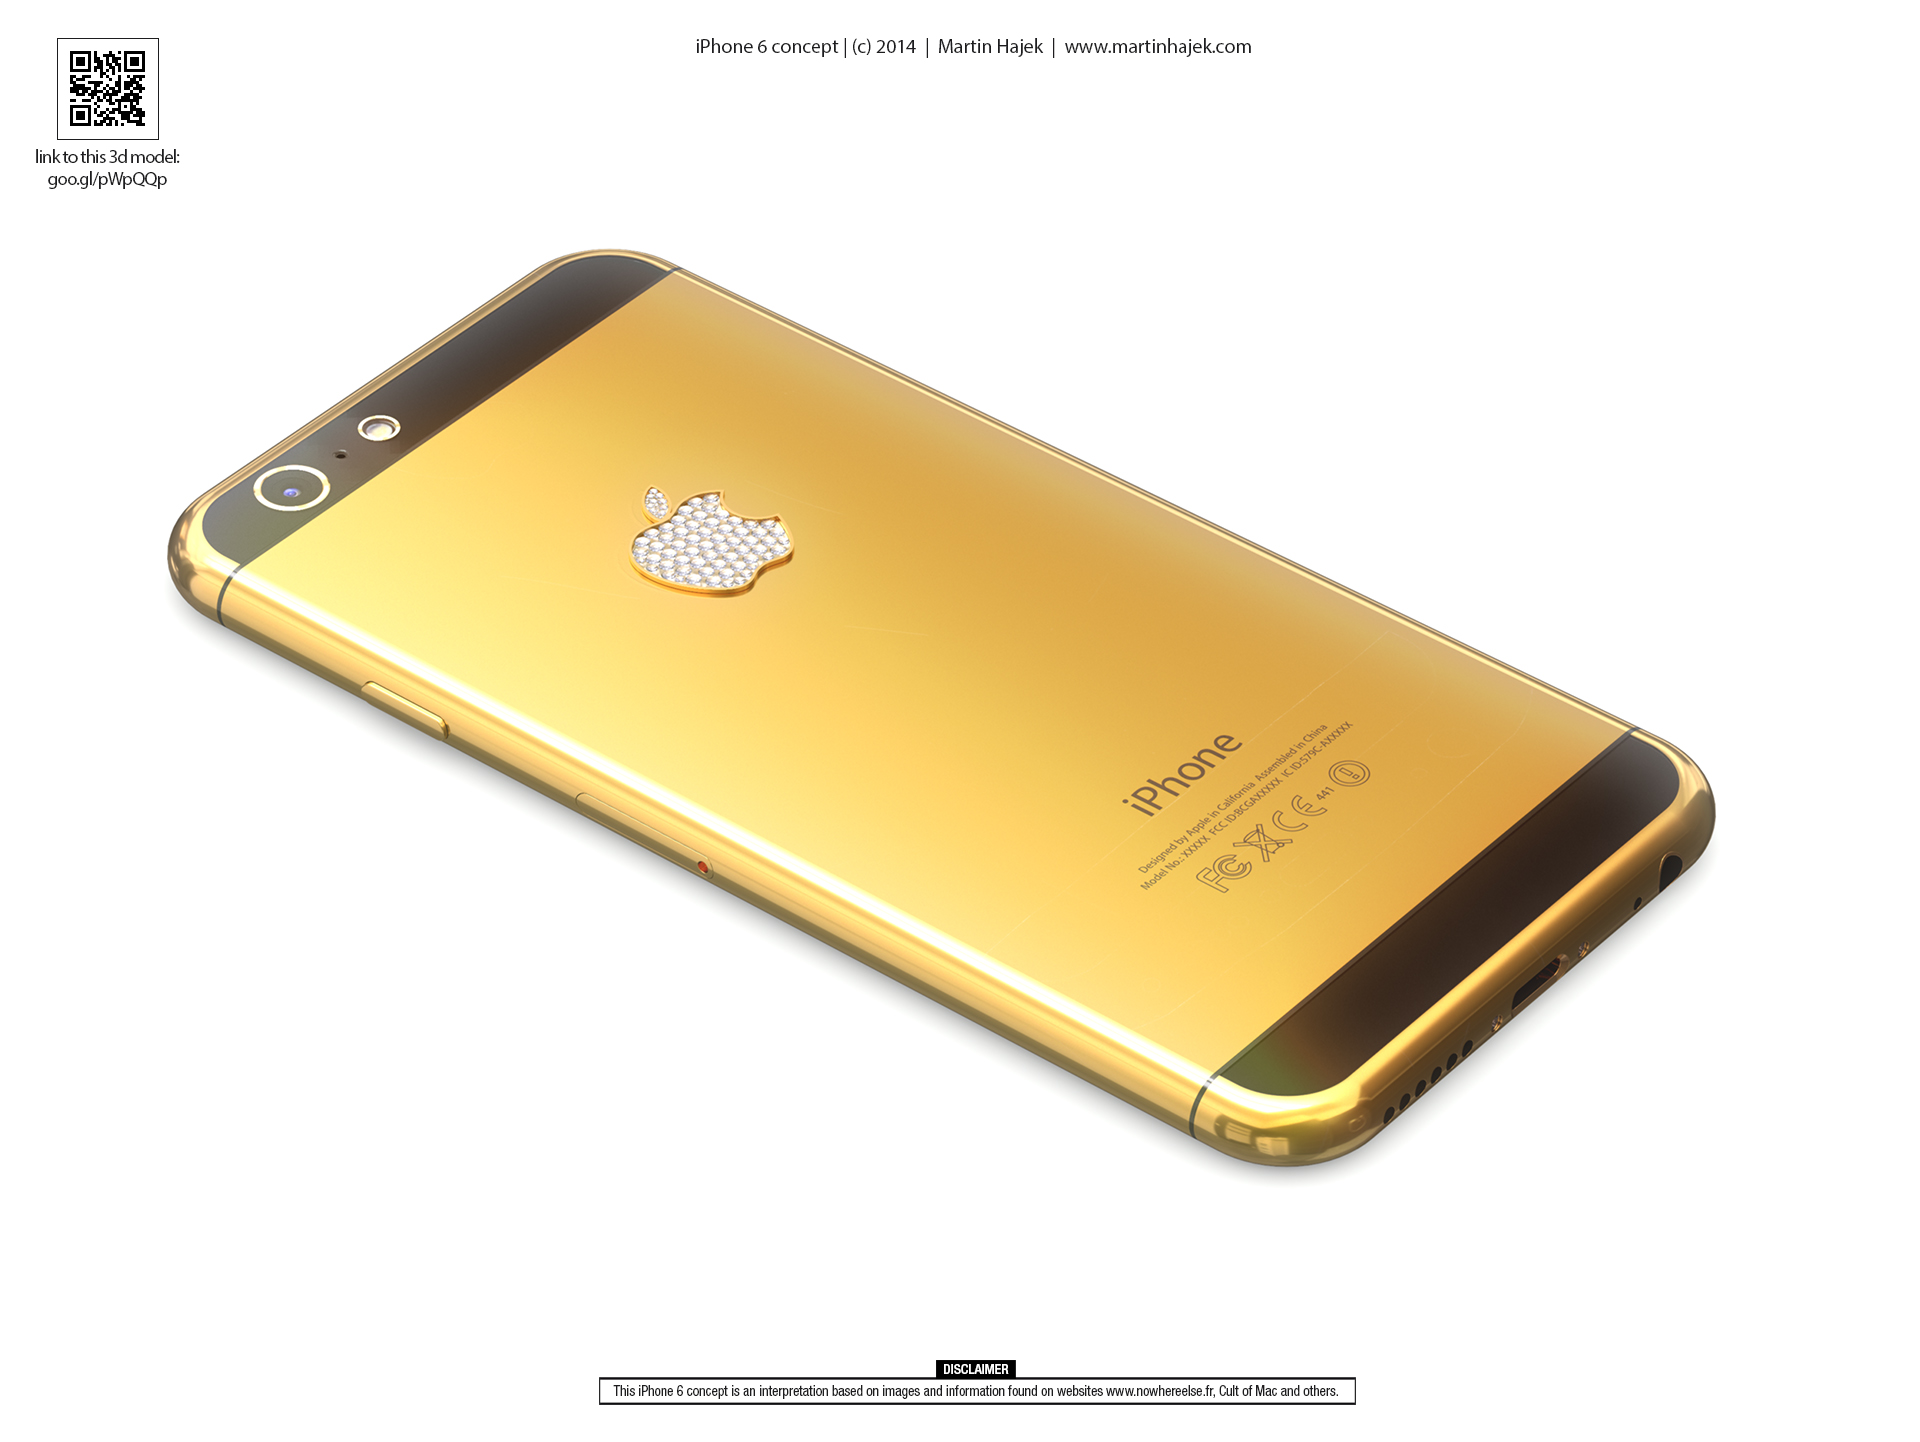 iPhone 6 in gold?